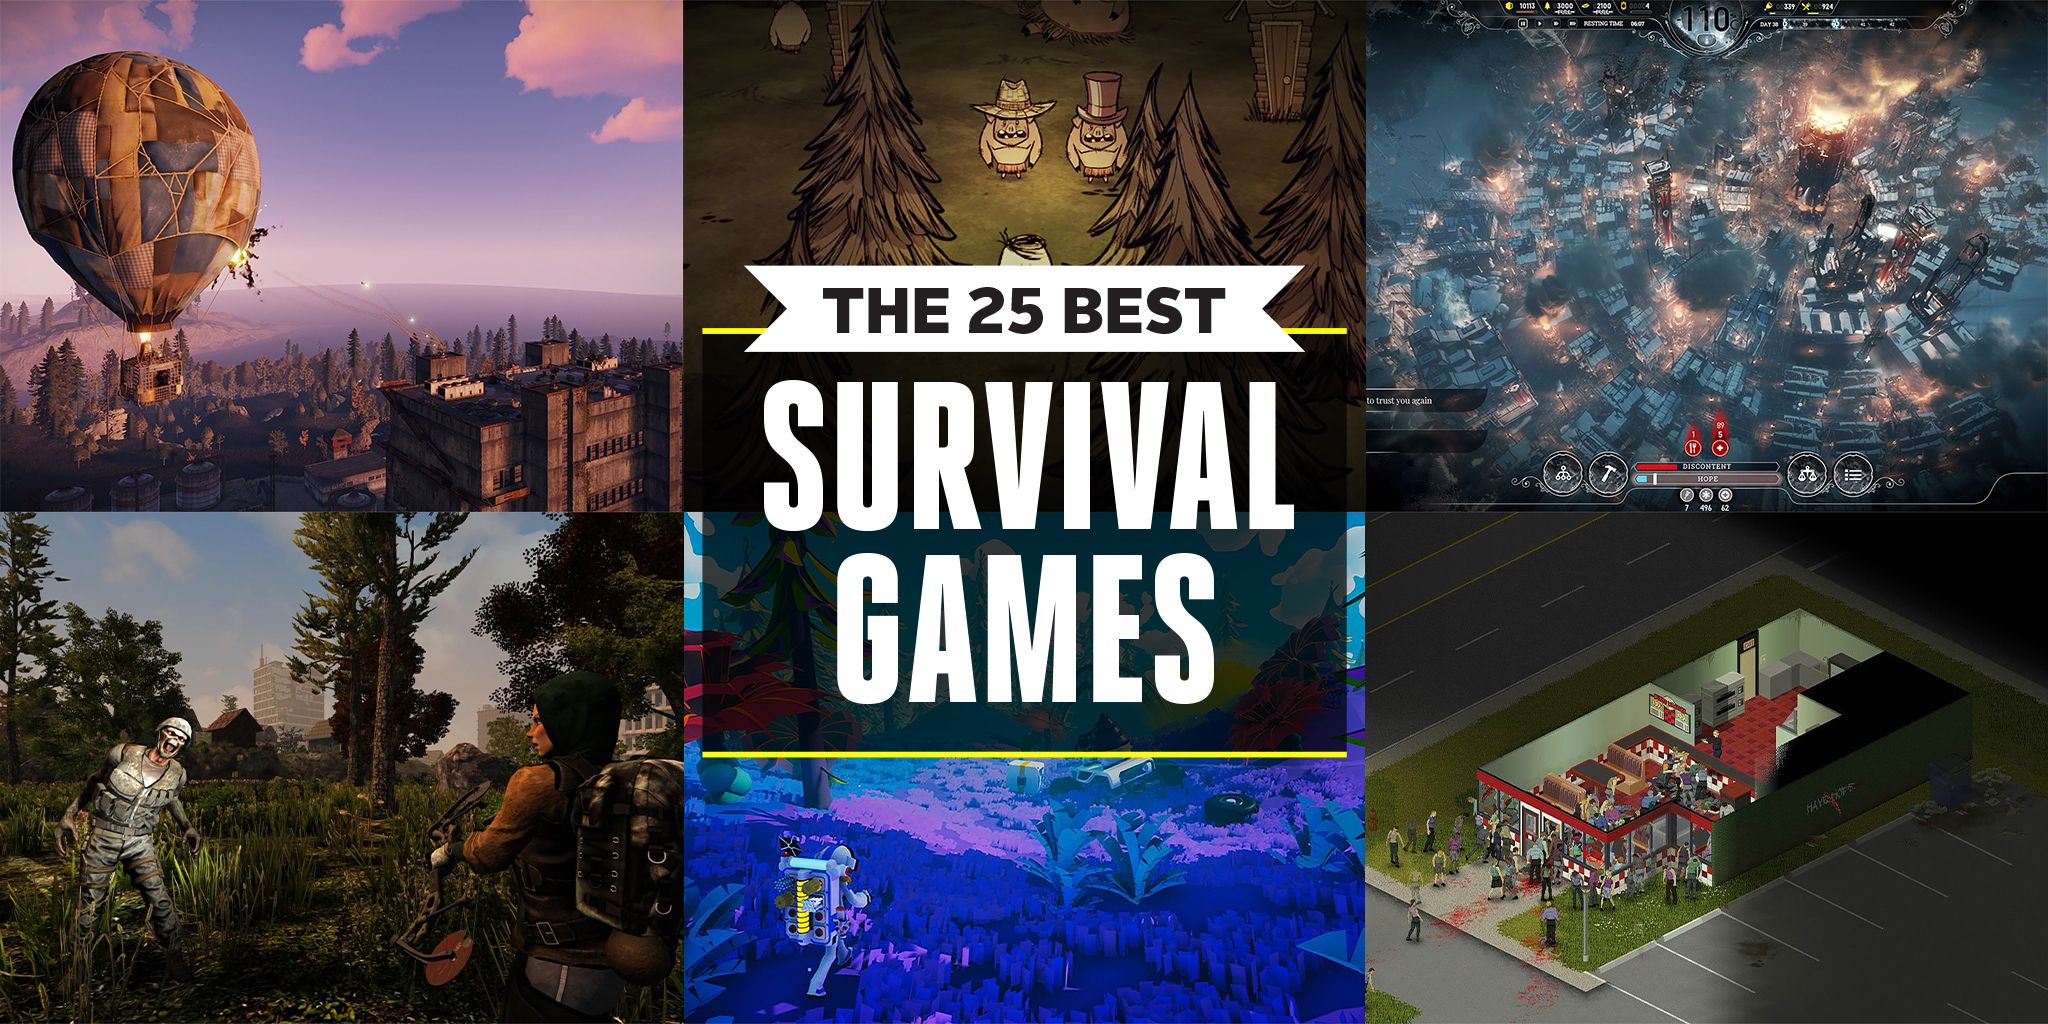 The 25 Best Survival Games